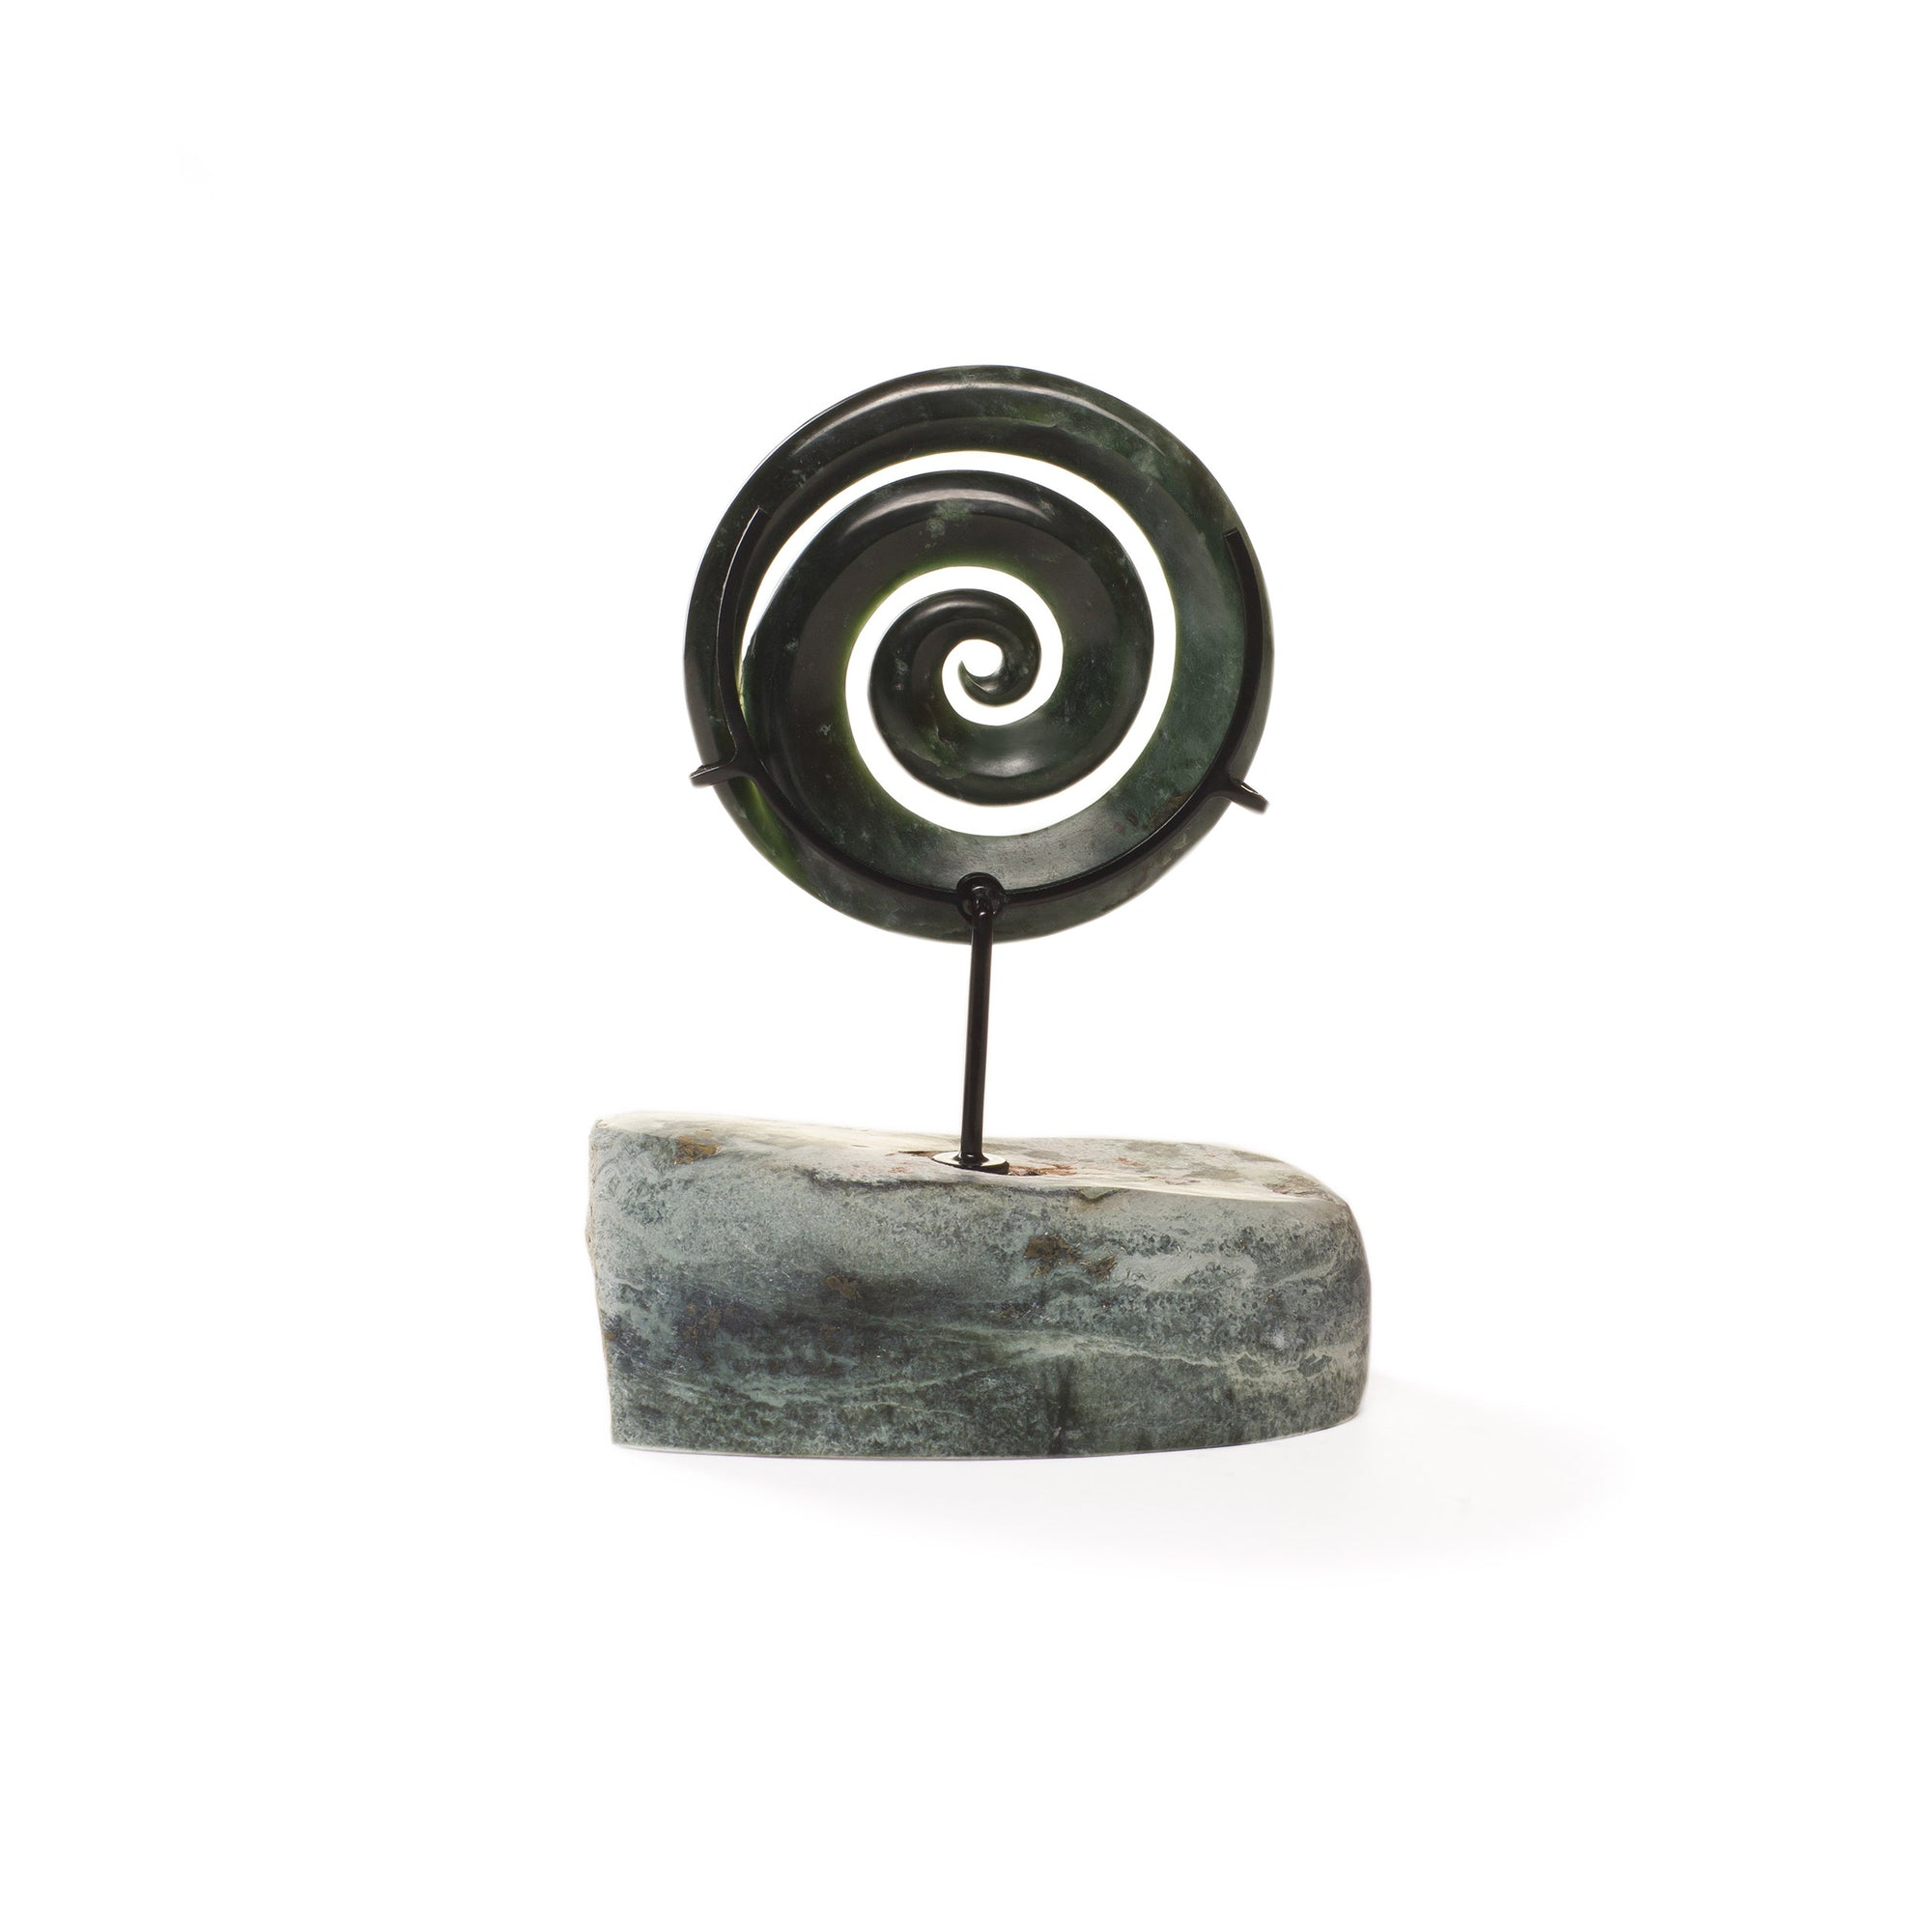 New Zealand Greenstone Spiral Sculpture